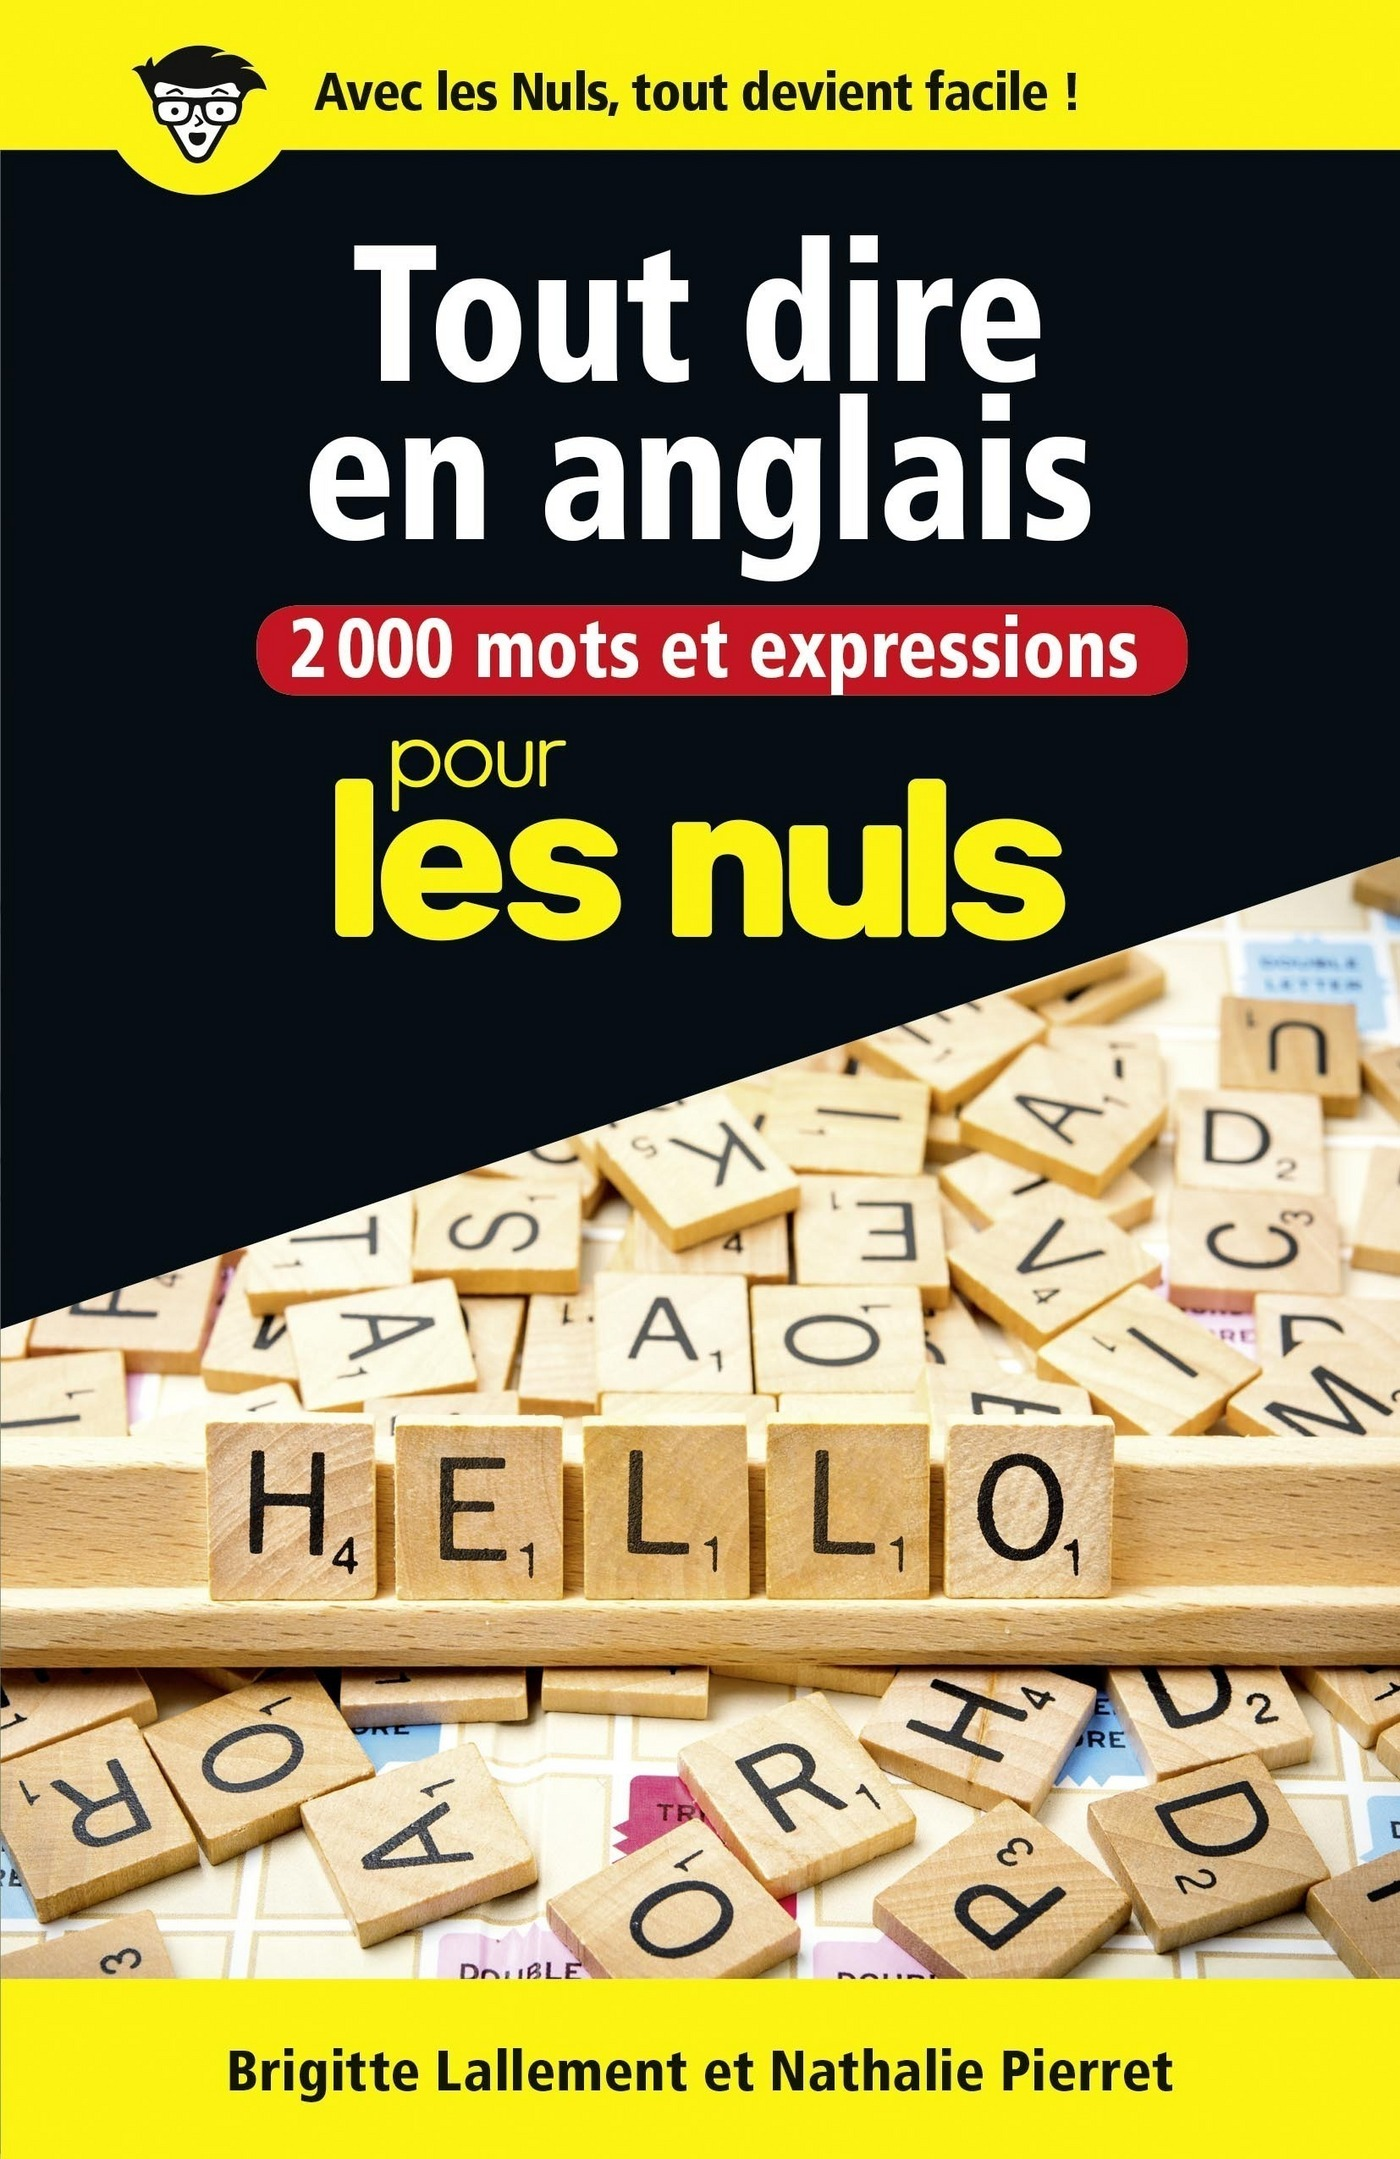 2000 mots et expressions pour tout dire en anglais pour les Nuls grand format